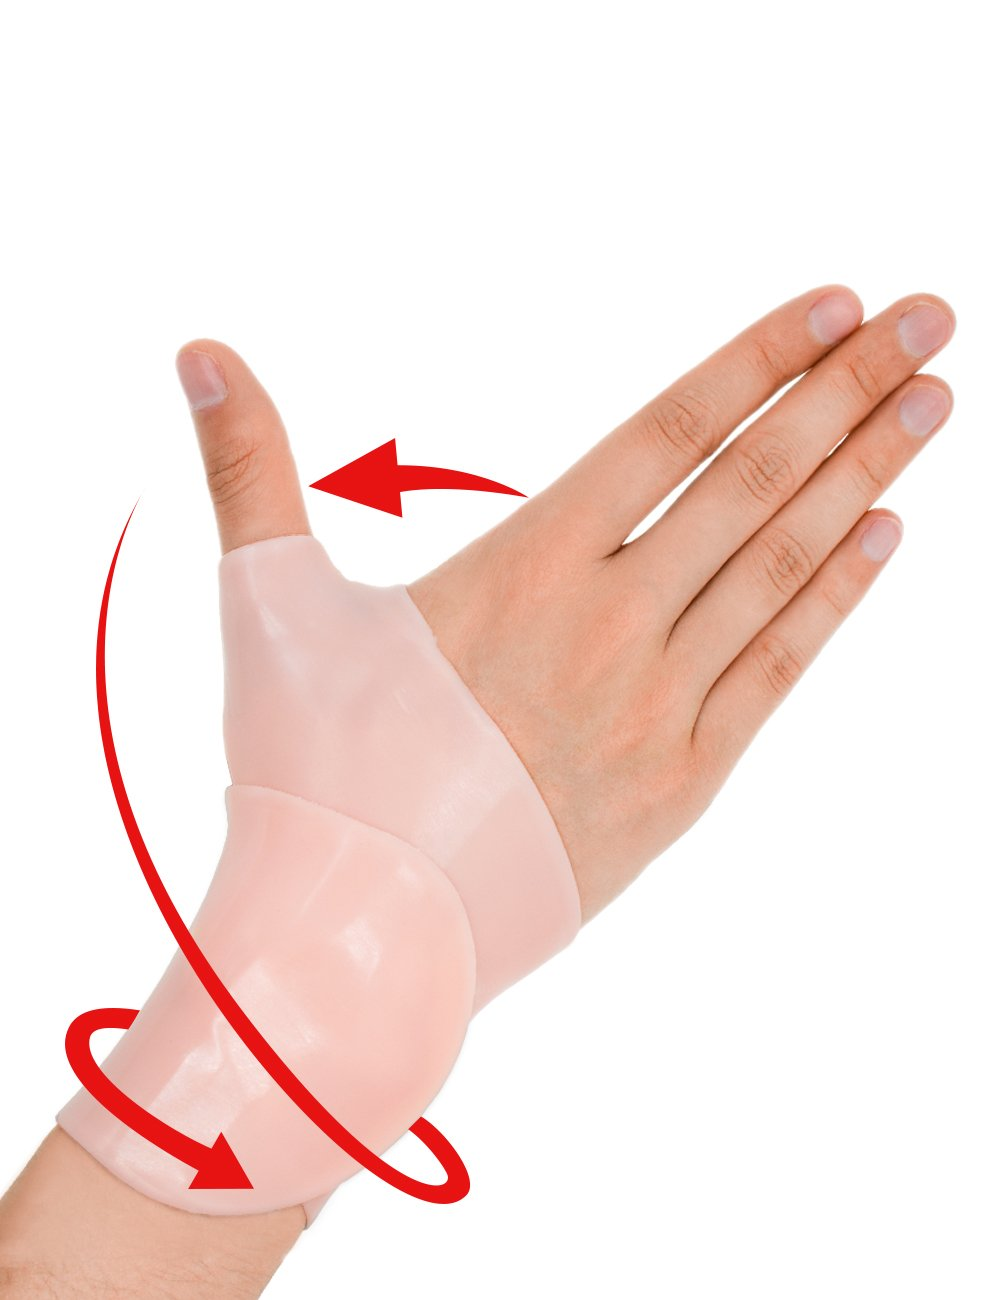 Gel Carpal Tunnel Wrist Brace - Wrist Splint Brace Support, Thumb Splintc, Adjustable Braces Suit for Everyone, Great for Tenosynovitis, Typing, Wrist & Thumb Pain, Rheumatism, Arthritis & More